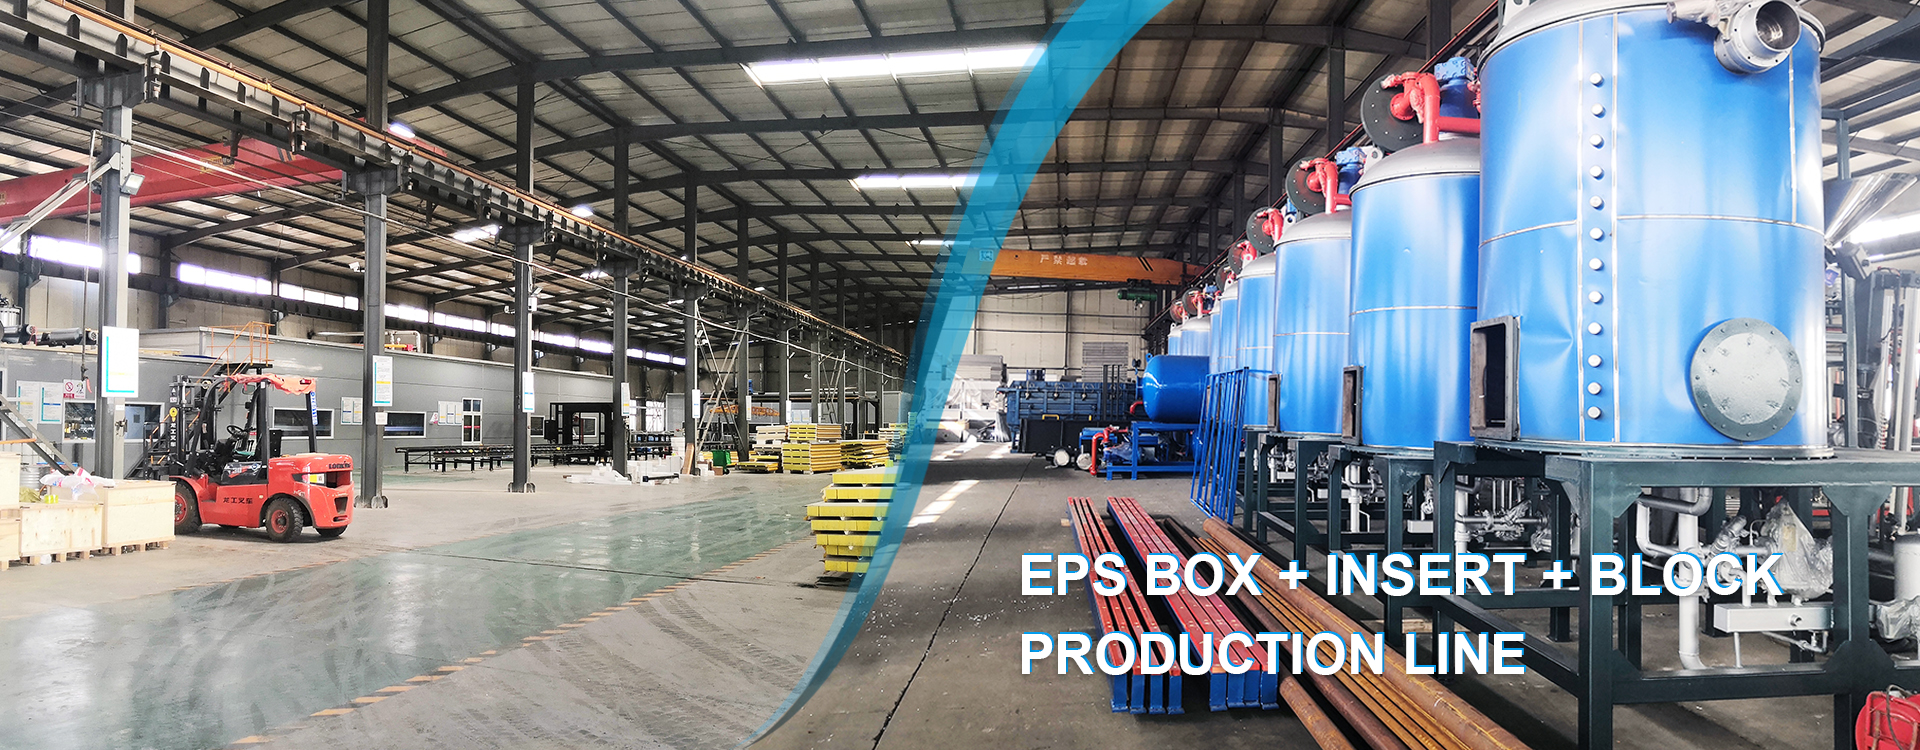 Building Materials Production Line